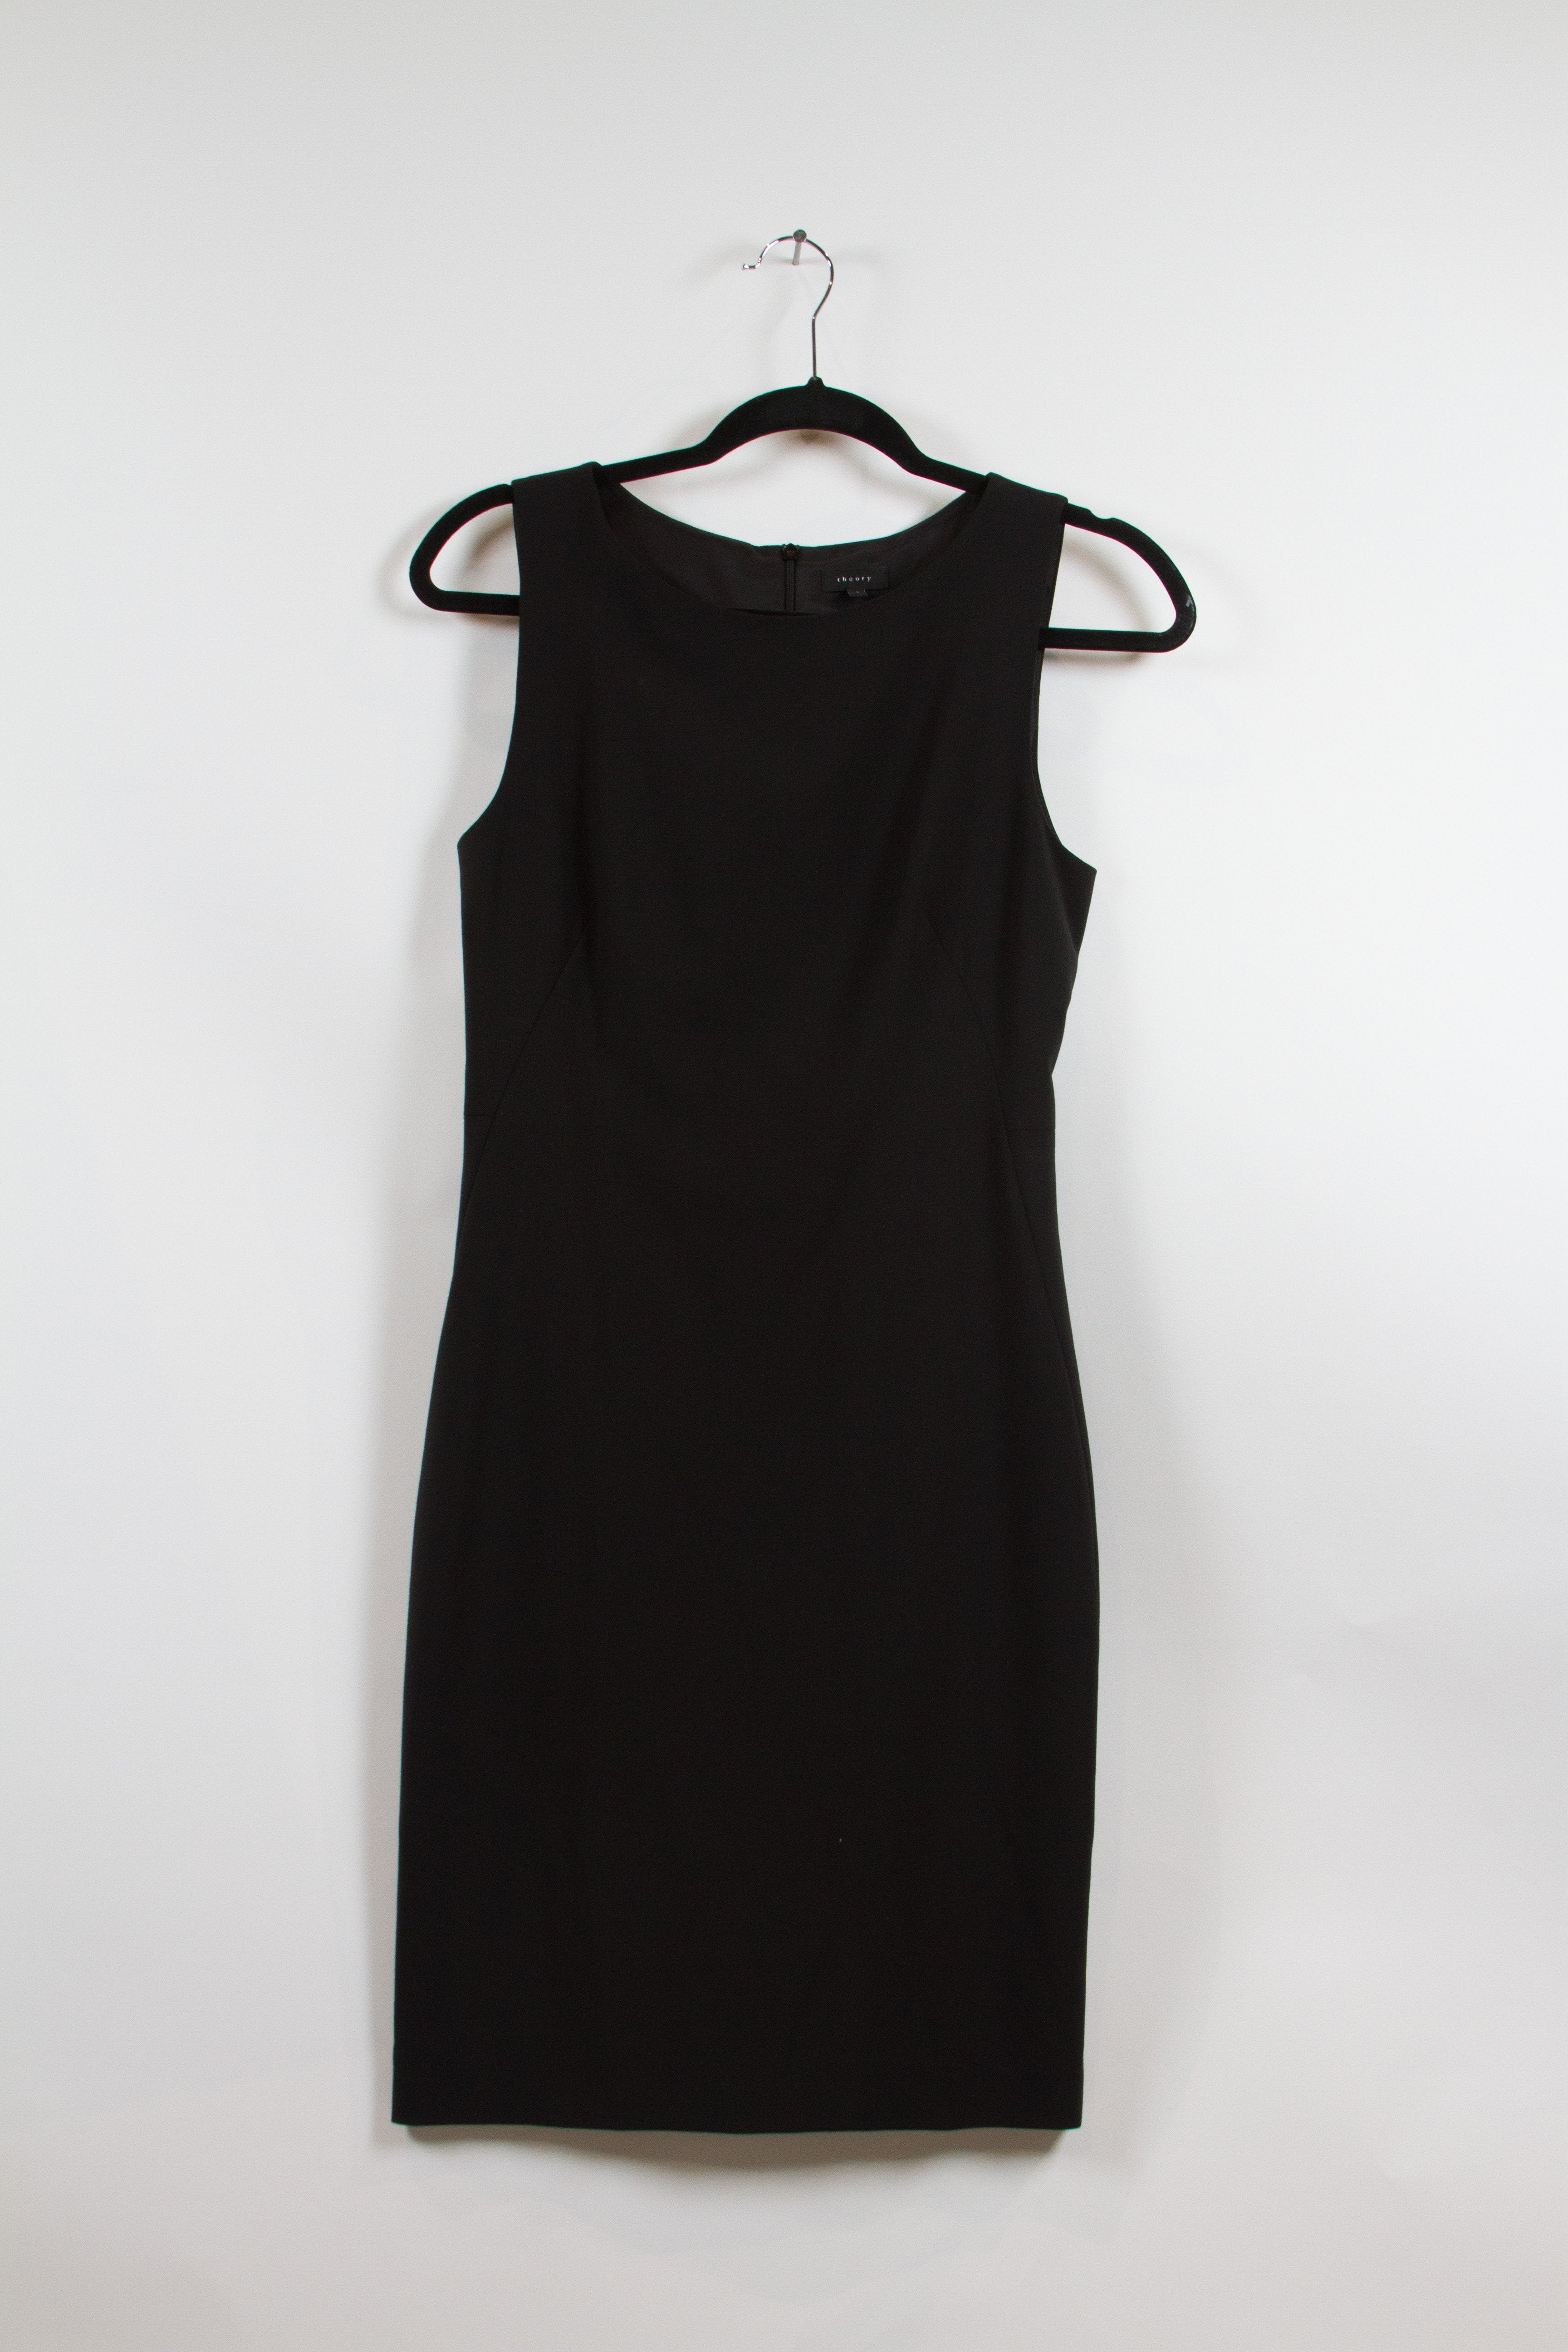 Theory Black Pencil Dress Size 4